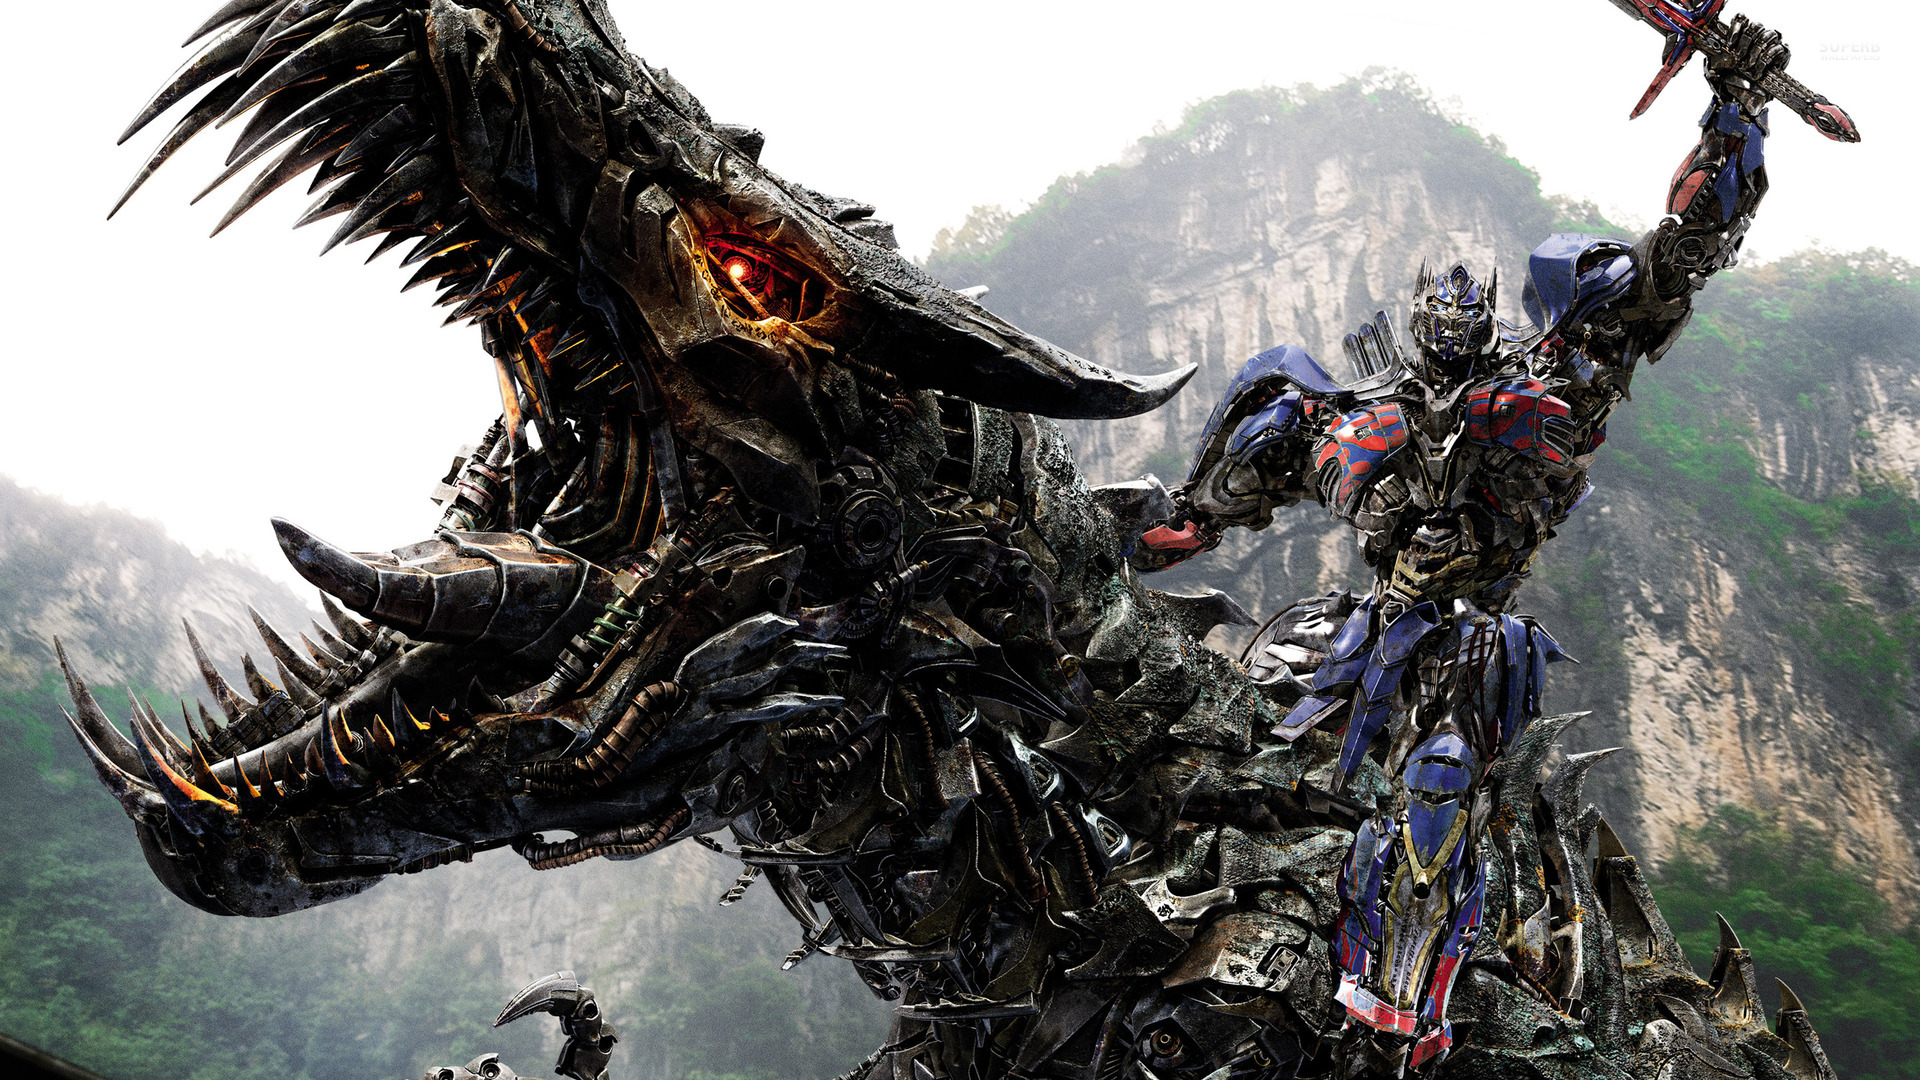 Transformers: Age of Extinction leader in Worldwide Box-Office